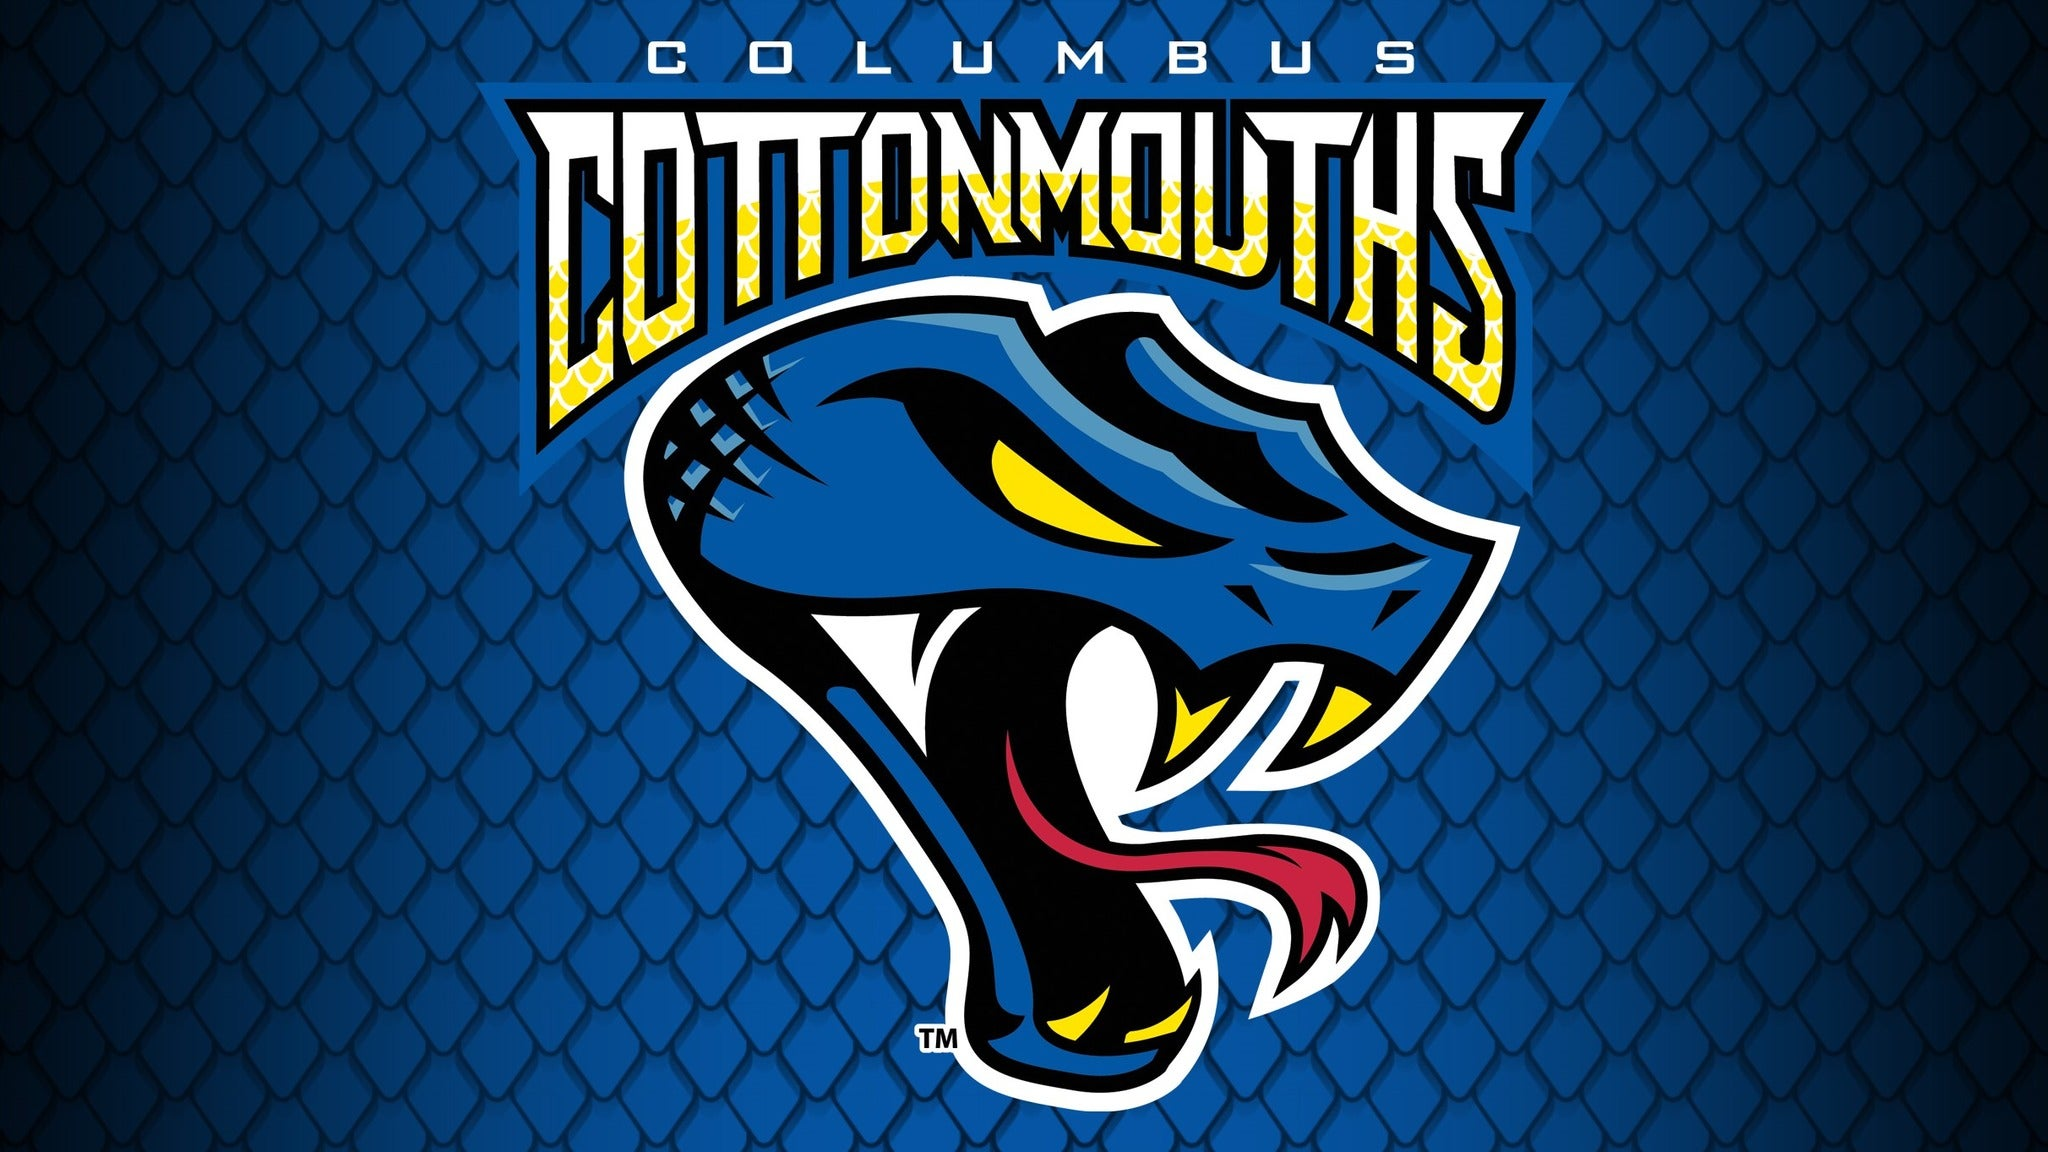 Columbus Cottonmouths vs. Evansville Thunderbolts - Columbus, GA 31901